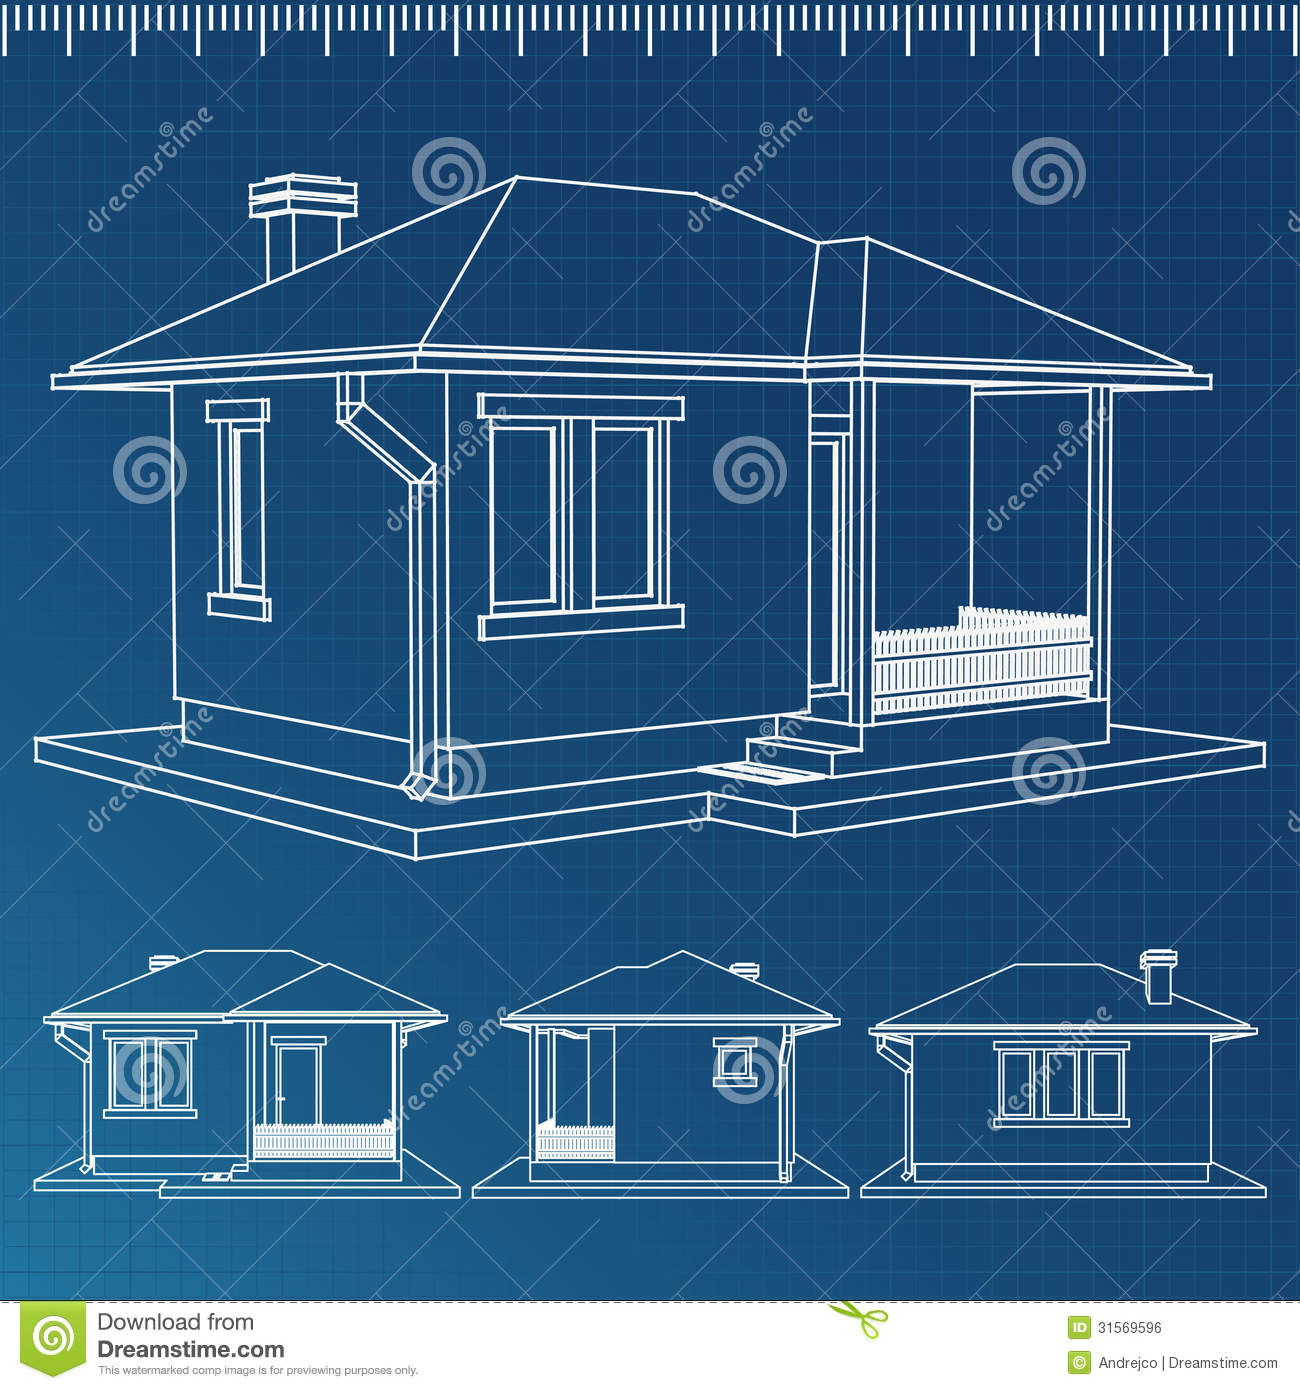 House blueprint stock vector image of project for House blueprint images